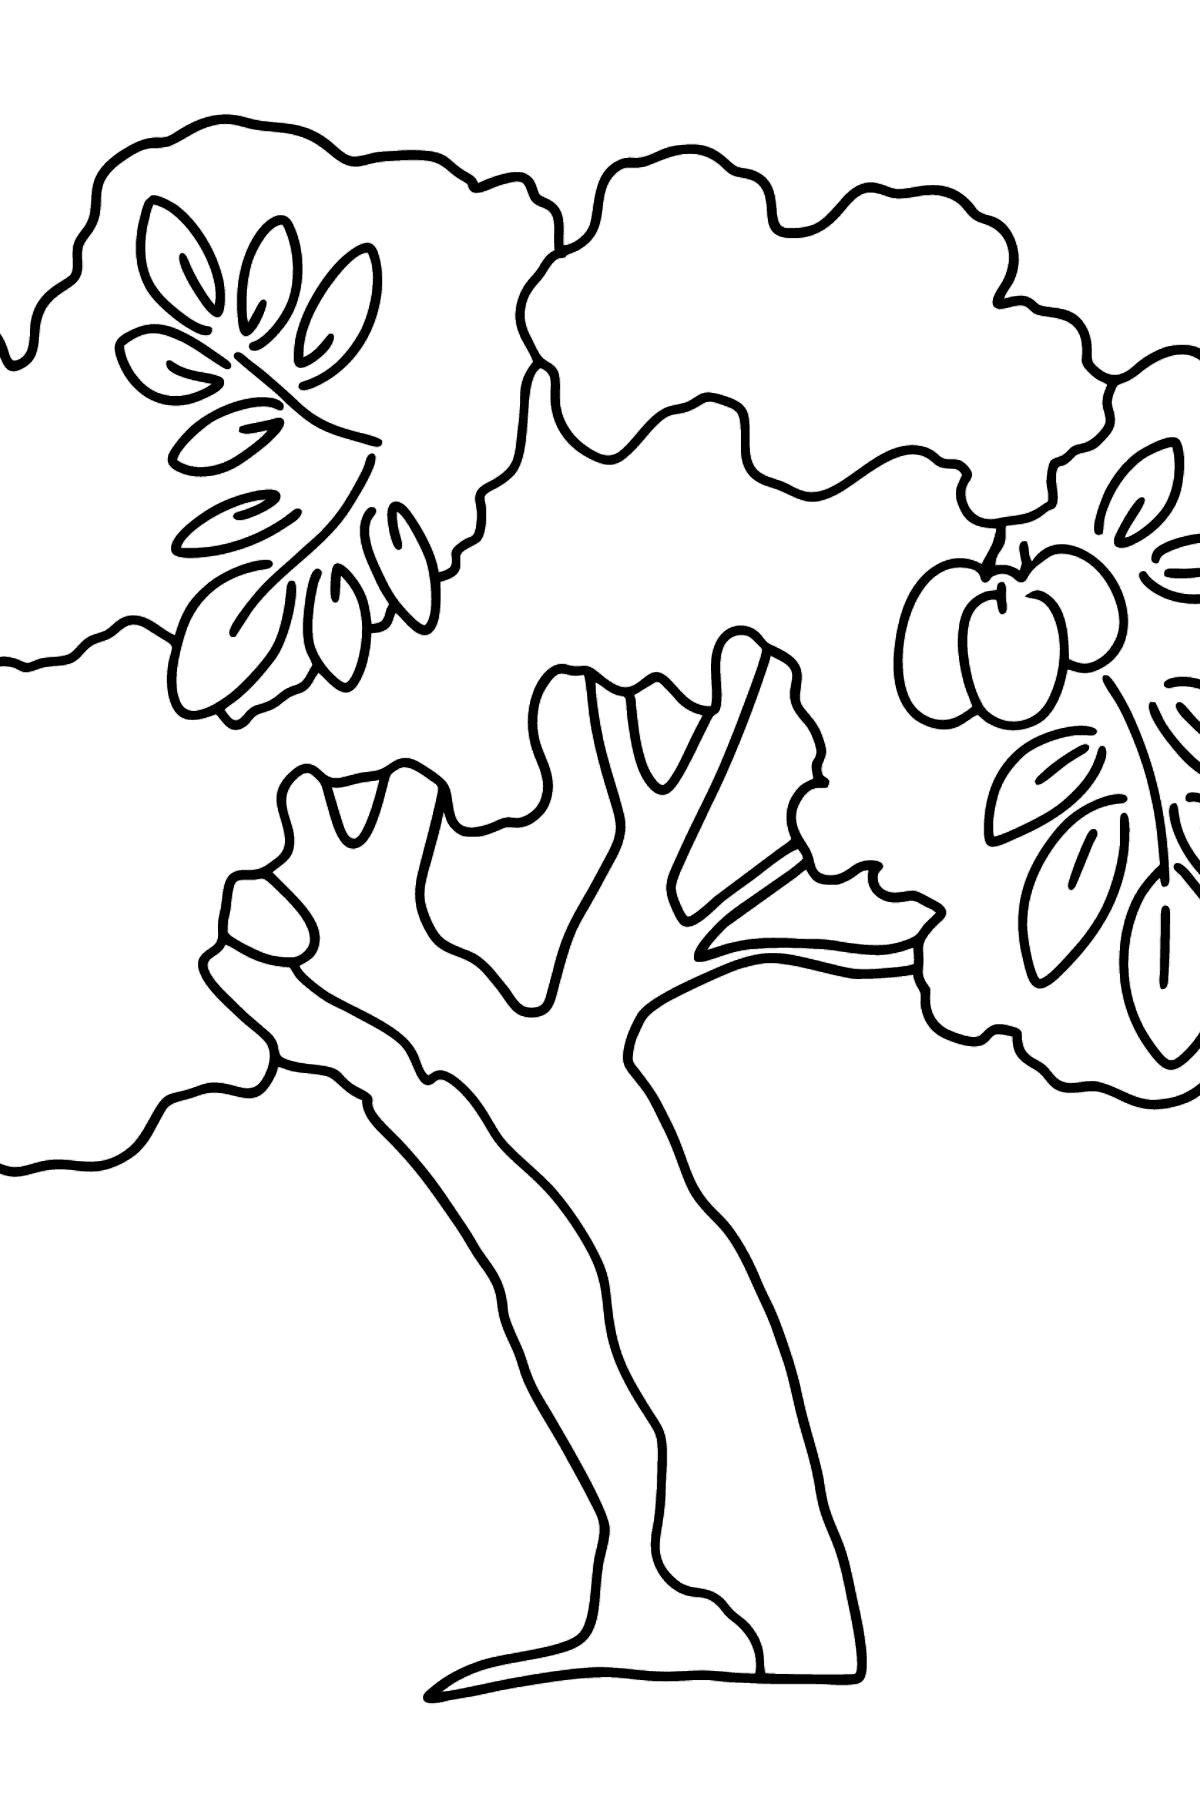 Walnut coloring page - Coloring Pages for Kids